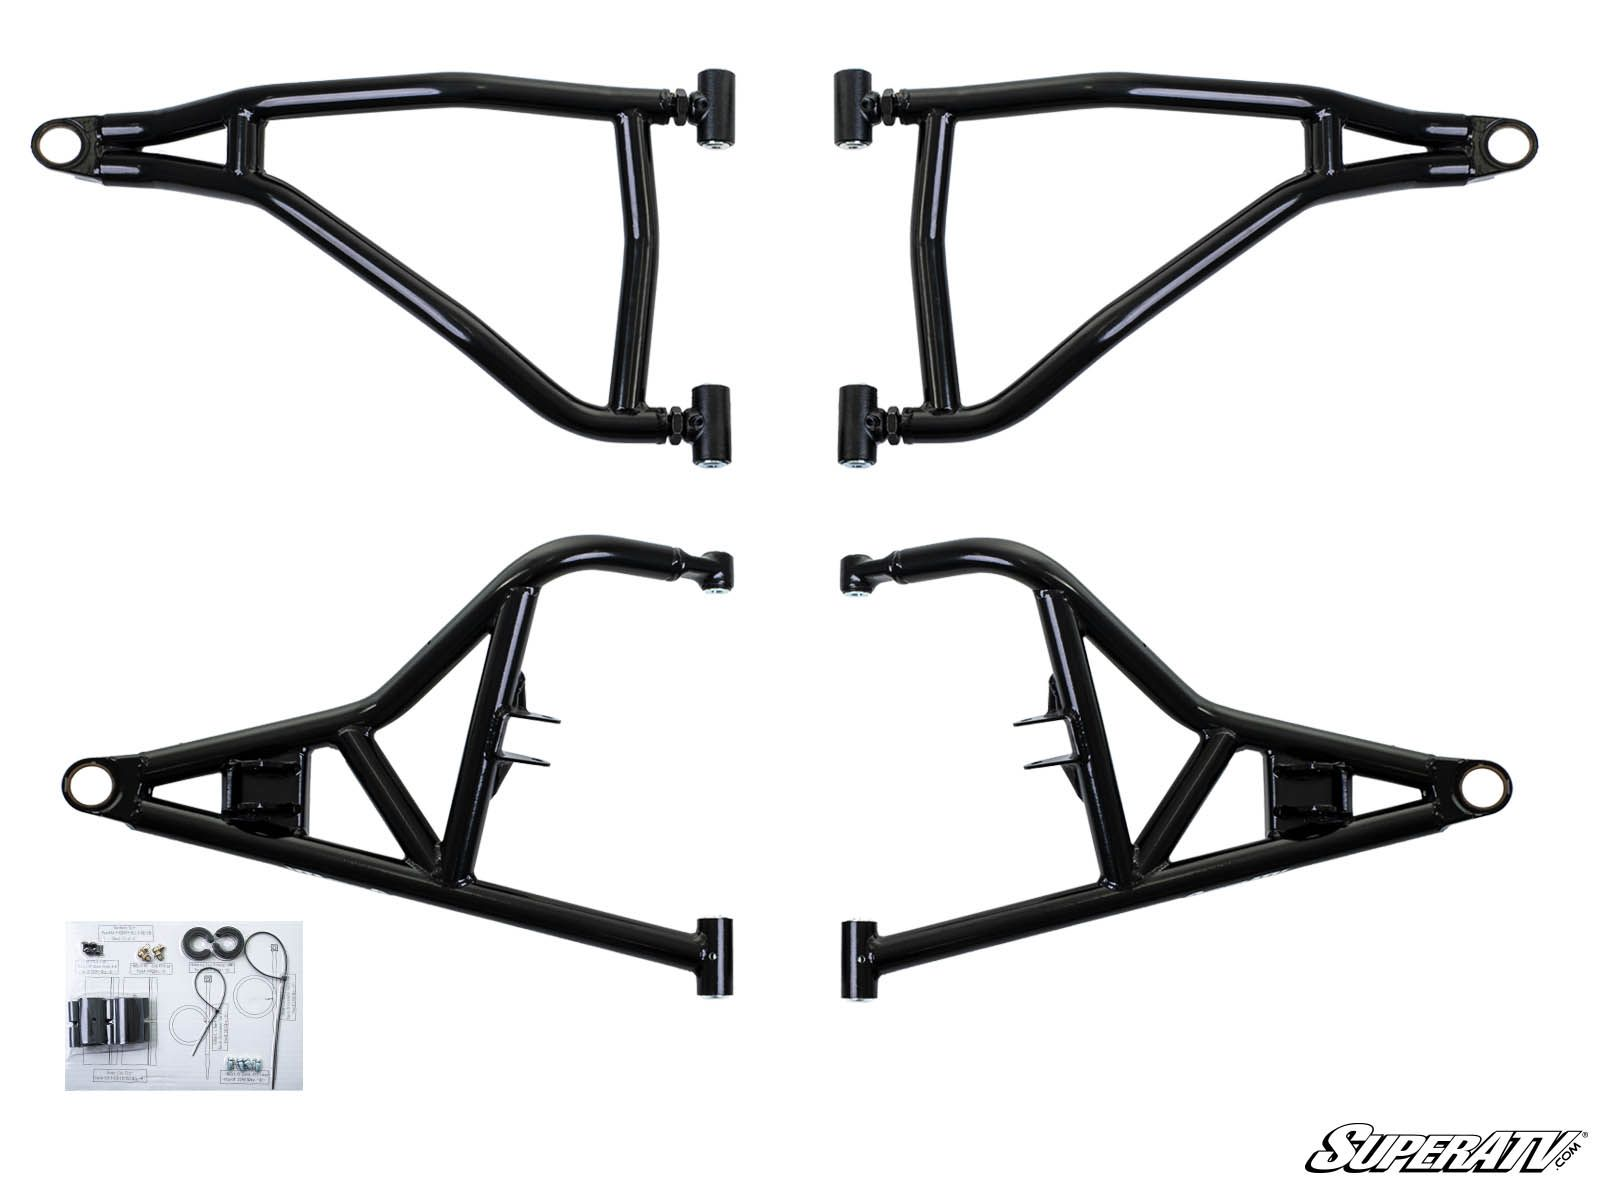 Superatv Polaris Rzr Xp High Clearance 1 5 Forward